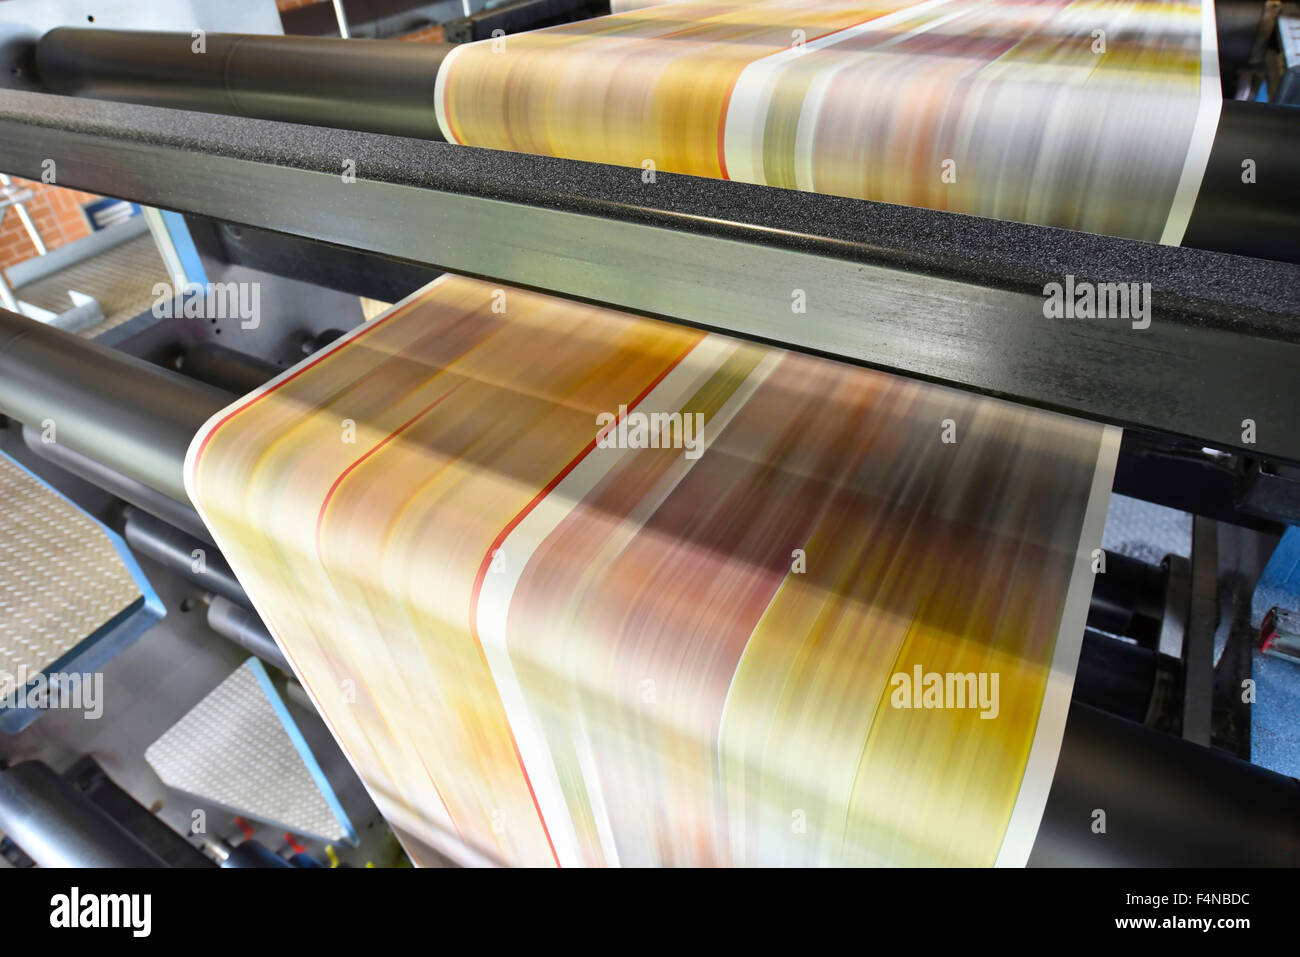 Printing machine in a printing shop - Stock Image